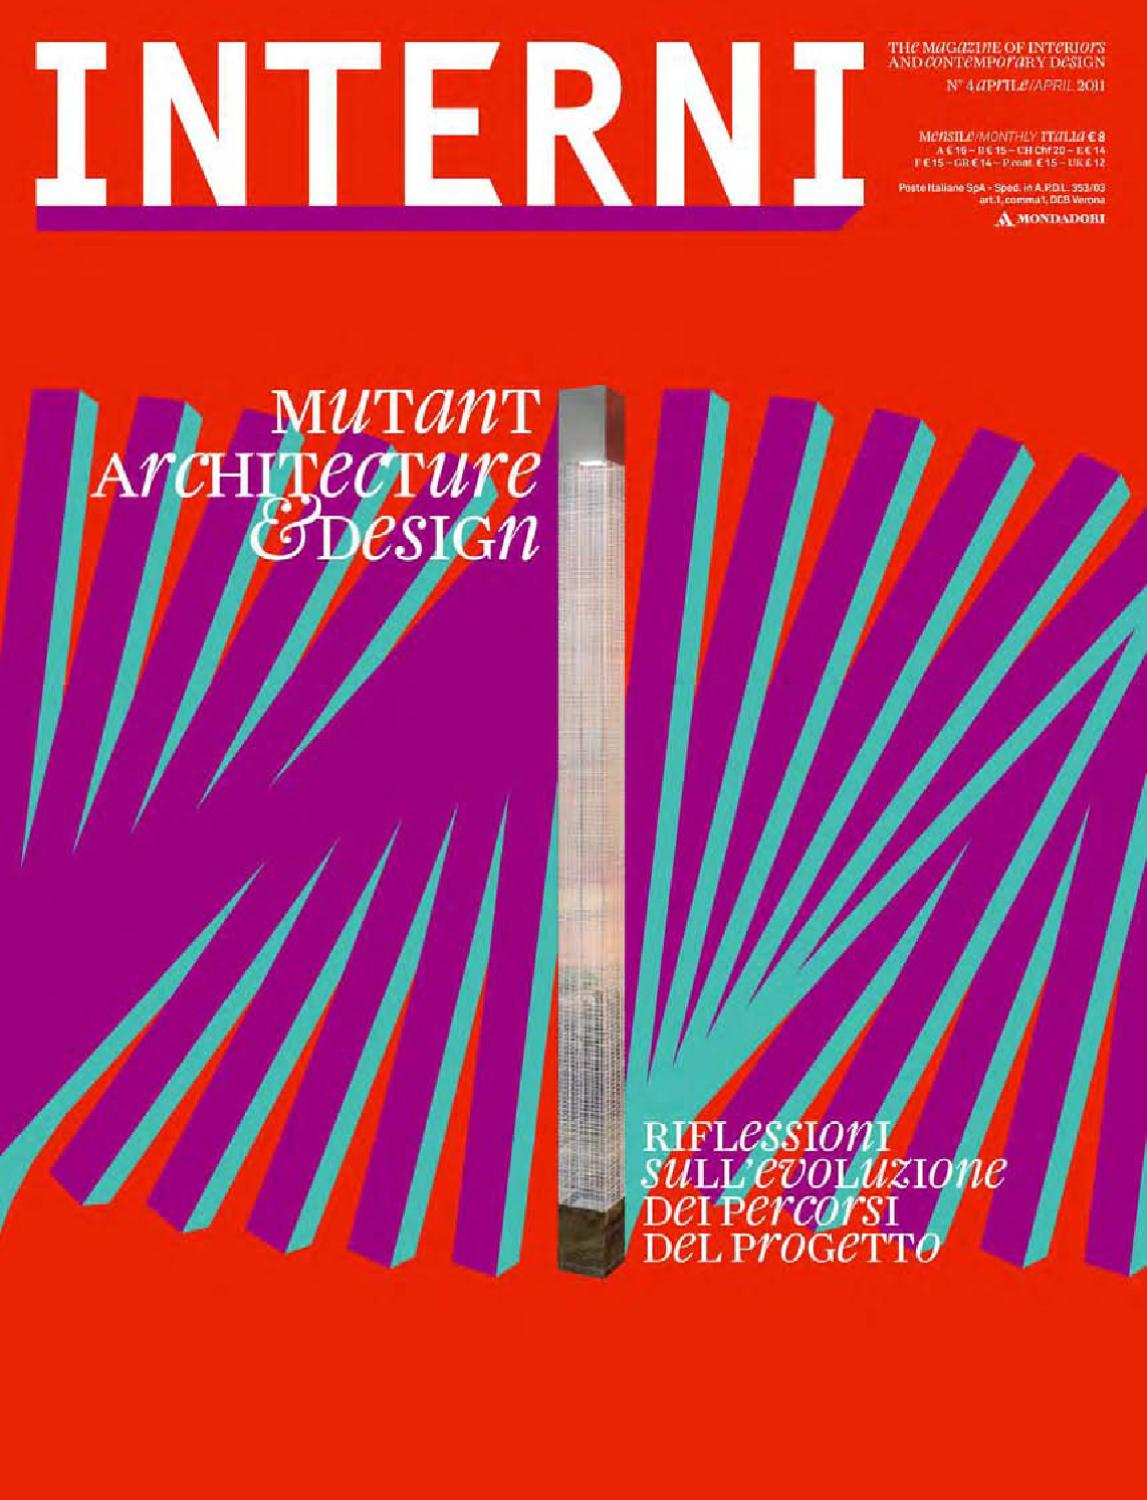 Interni magazine 610 april 2011 by interni magazine issuu for Riviste di interni